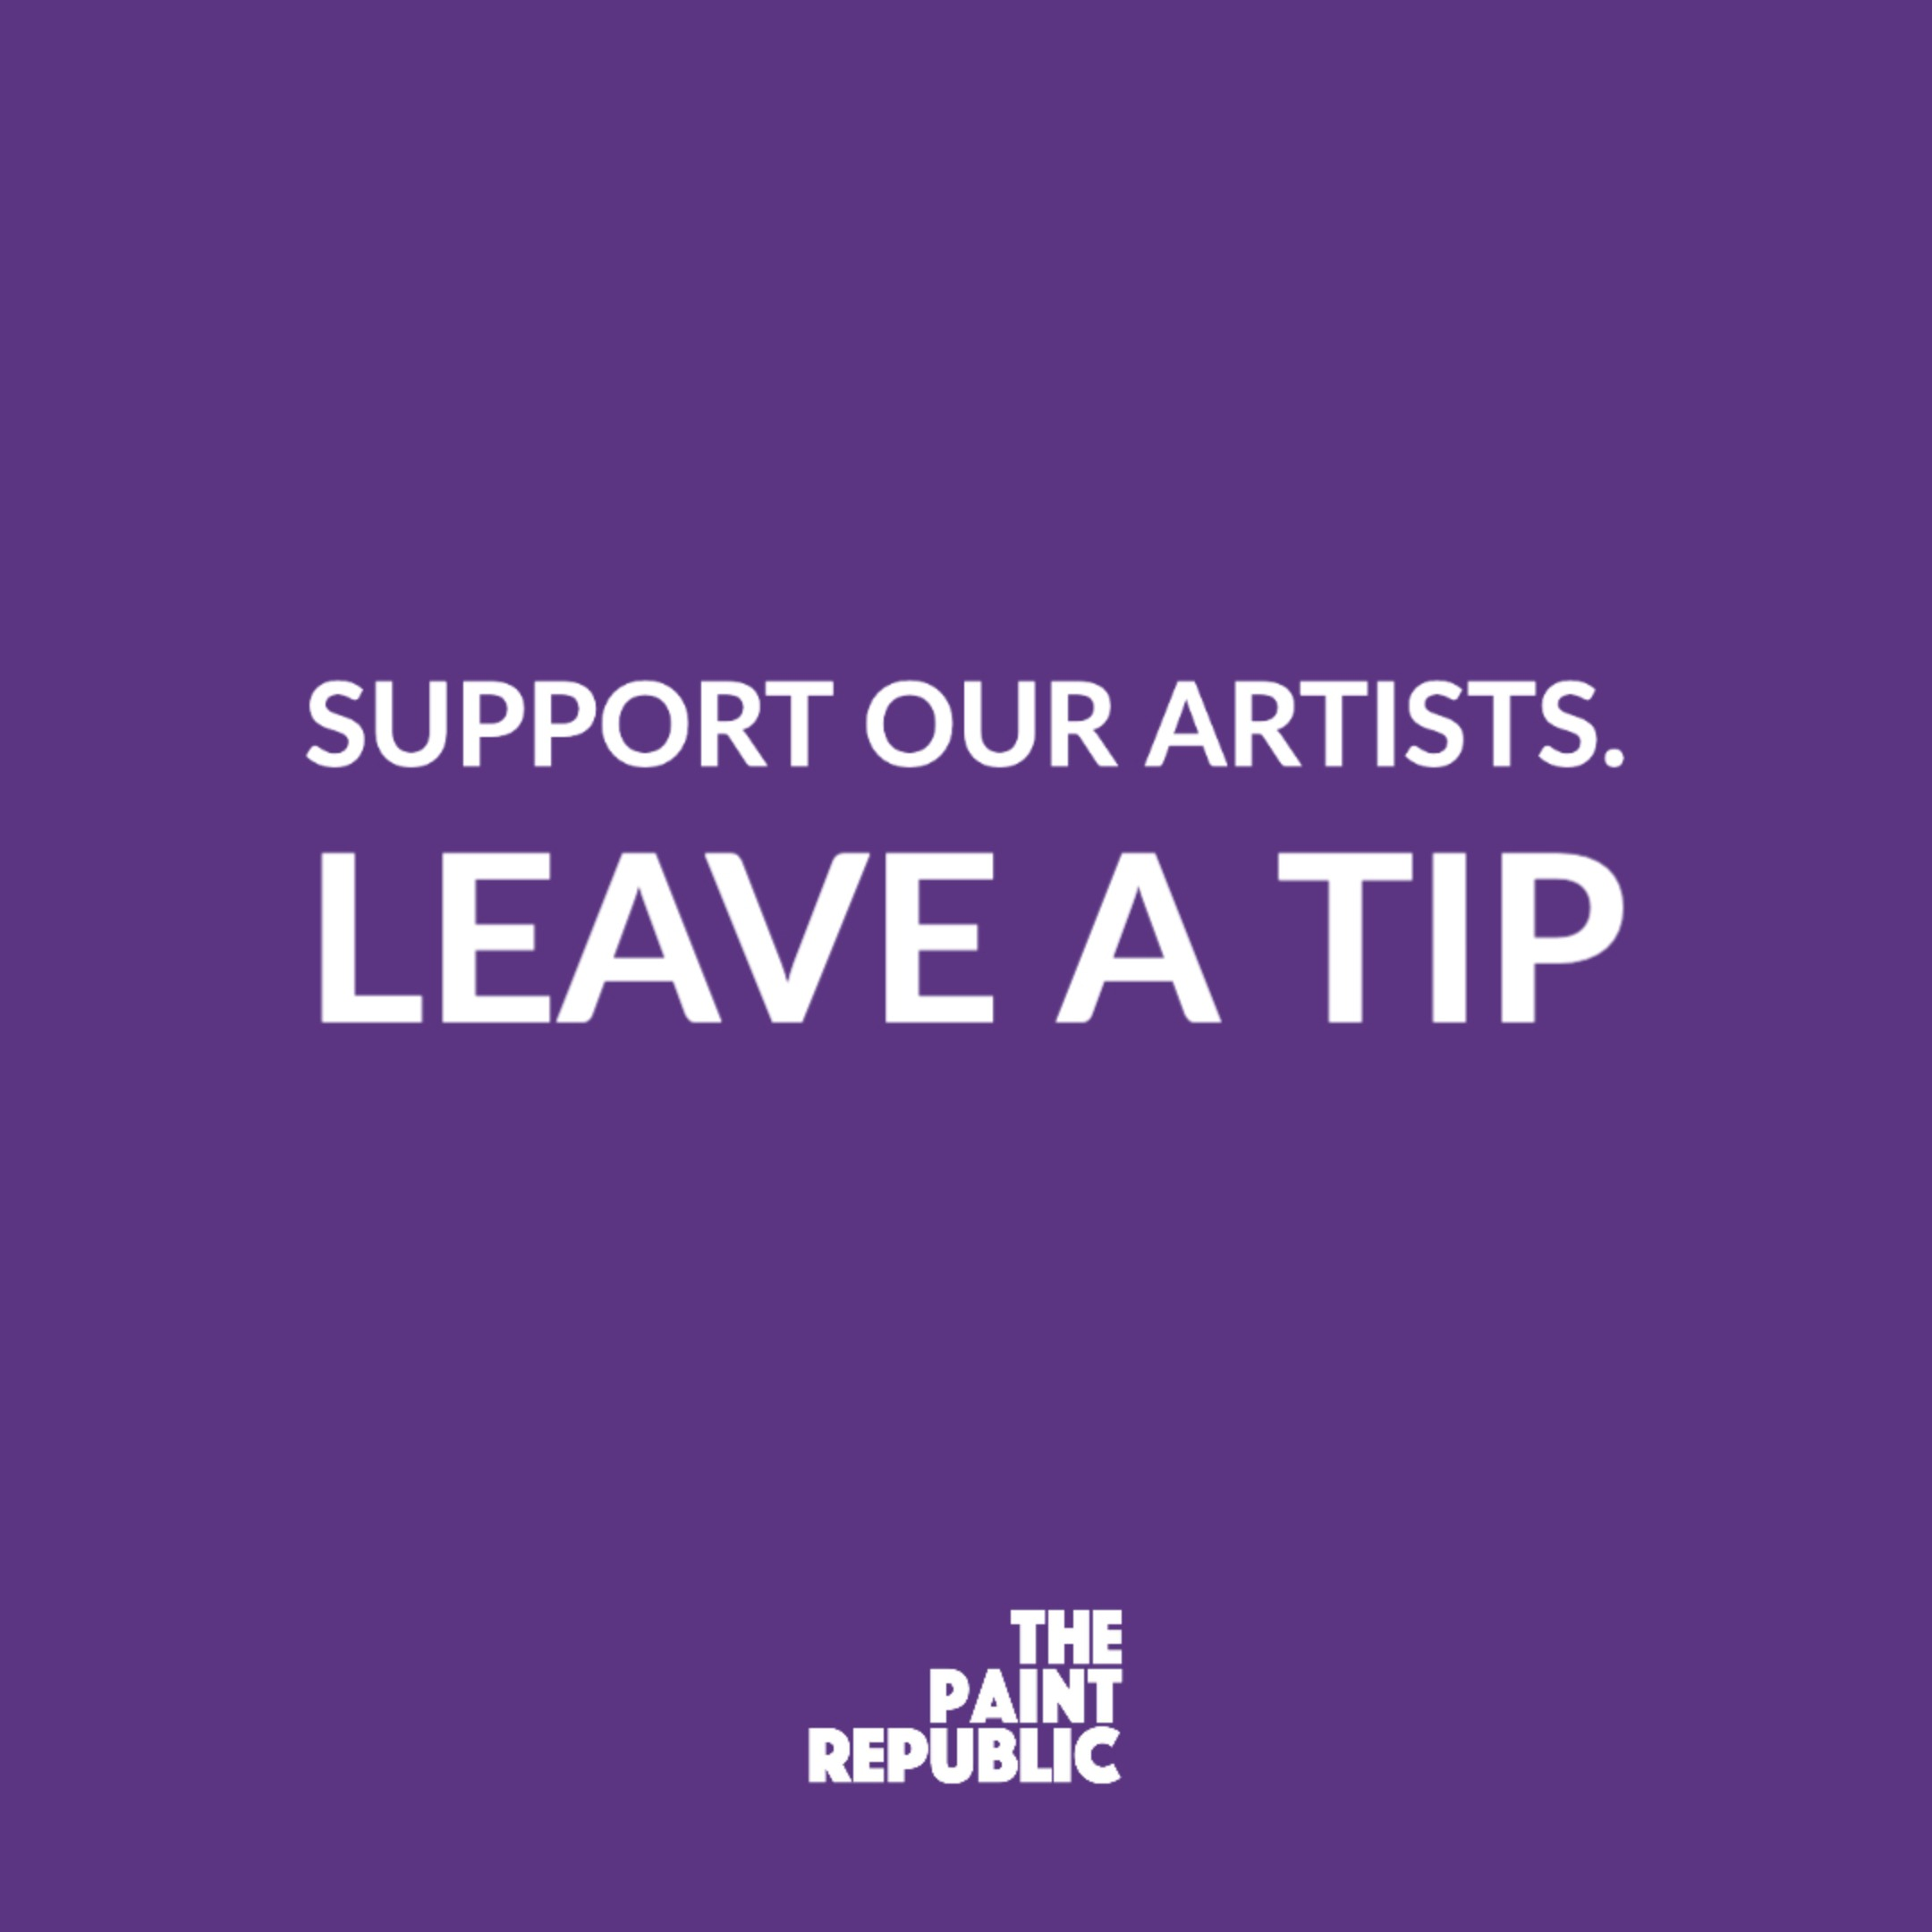 Support our artists. Leave a tip!